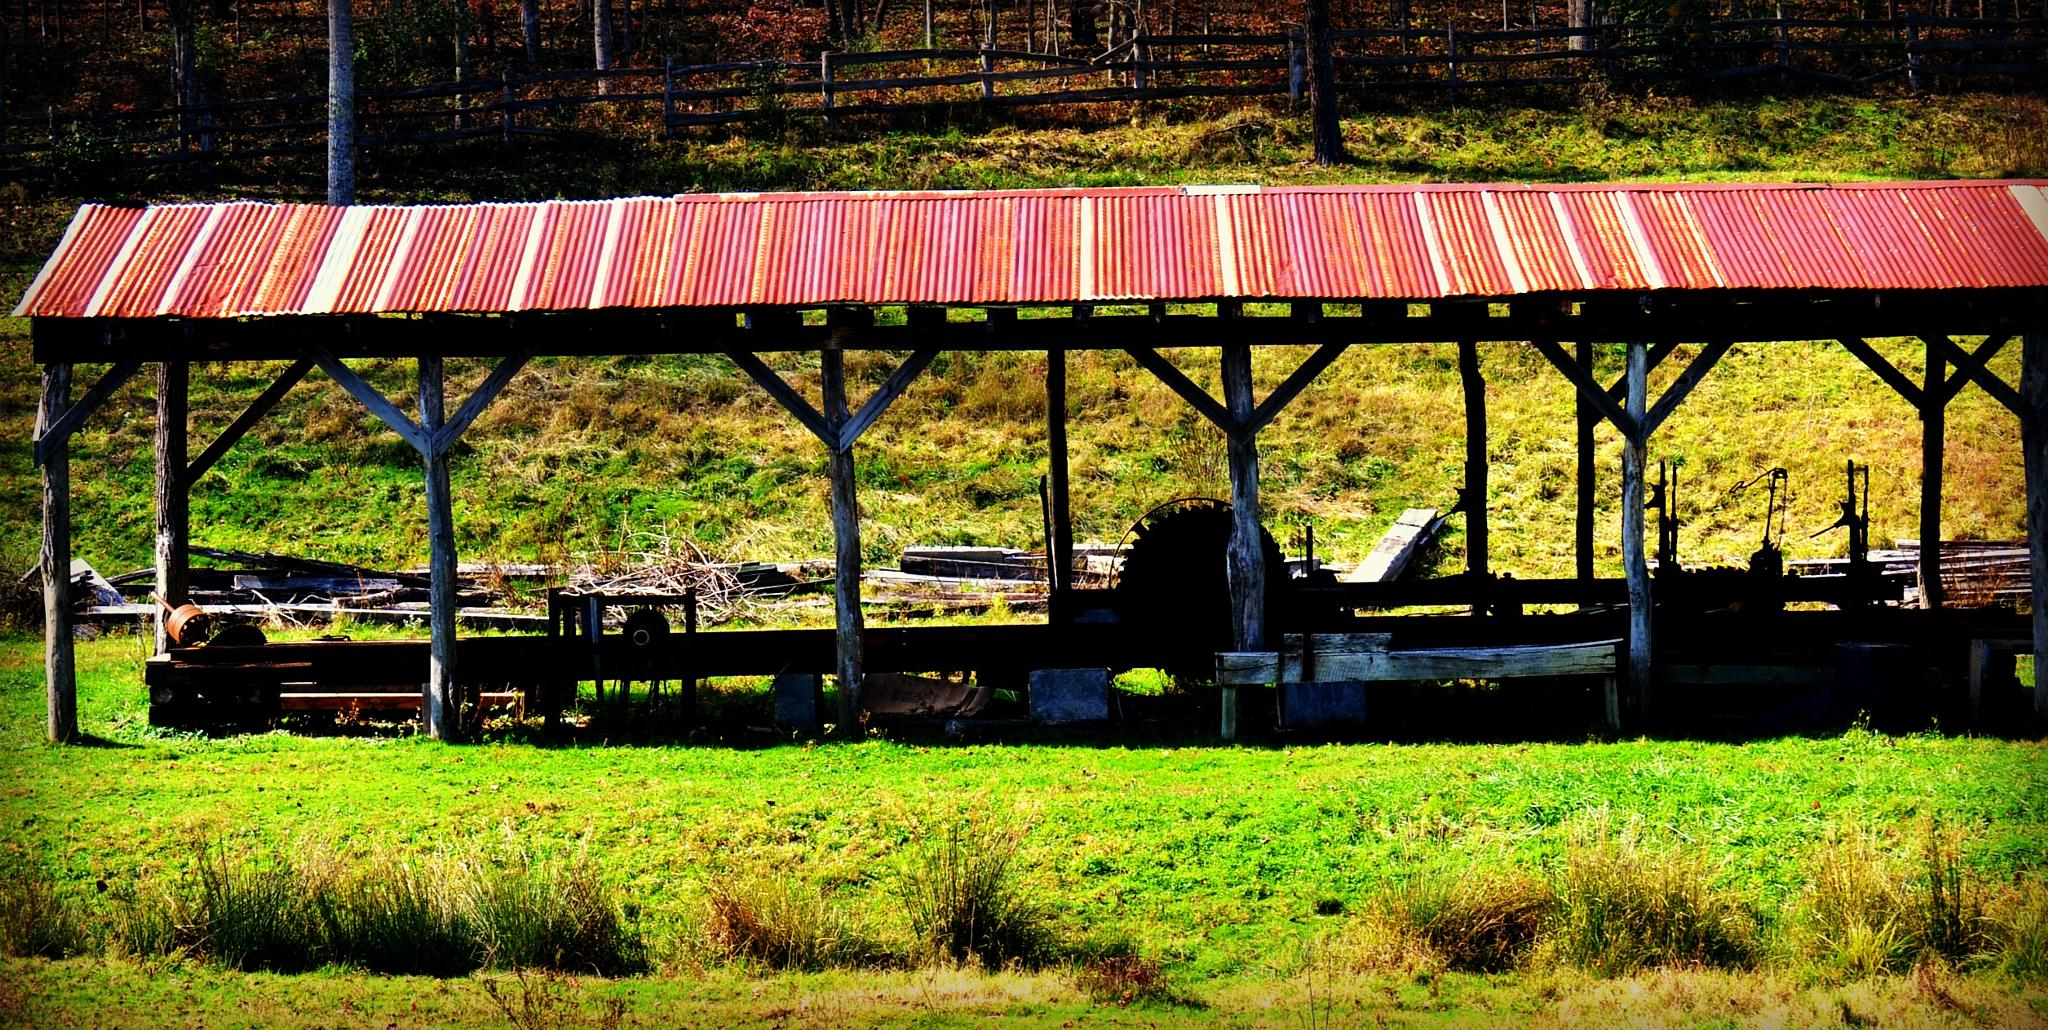 Sawmill at the Old Farm by lindandarrell